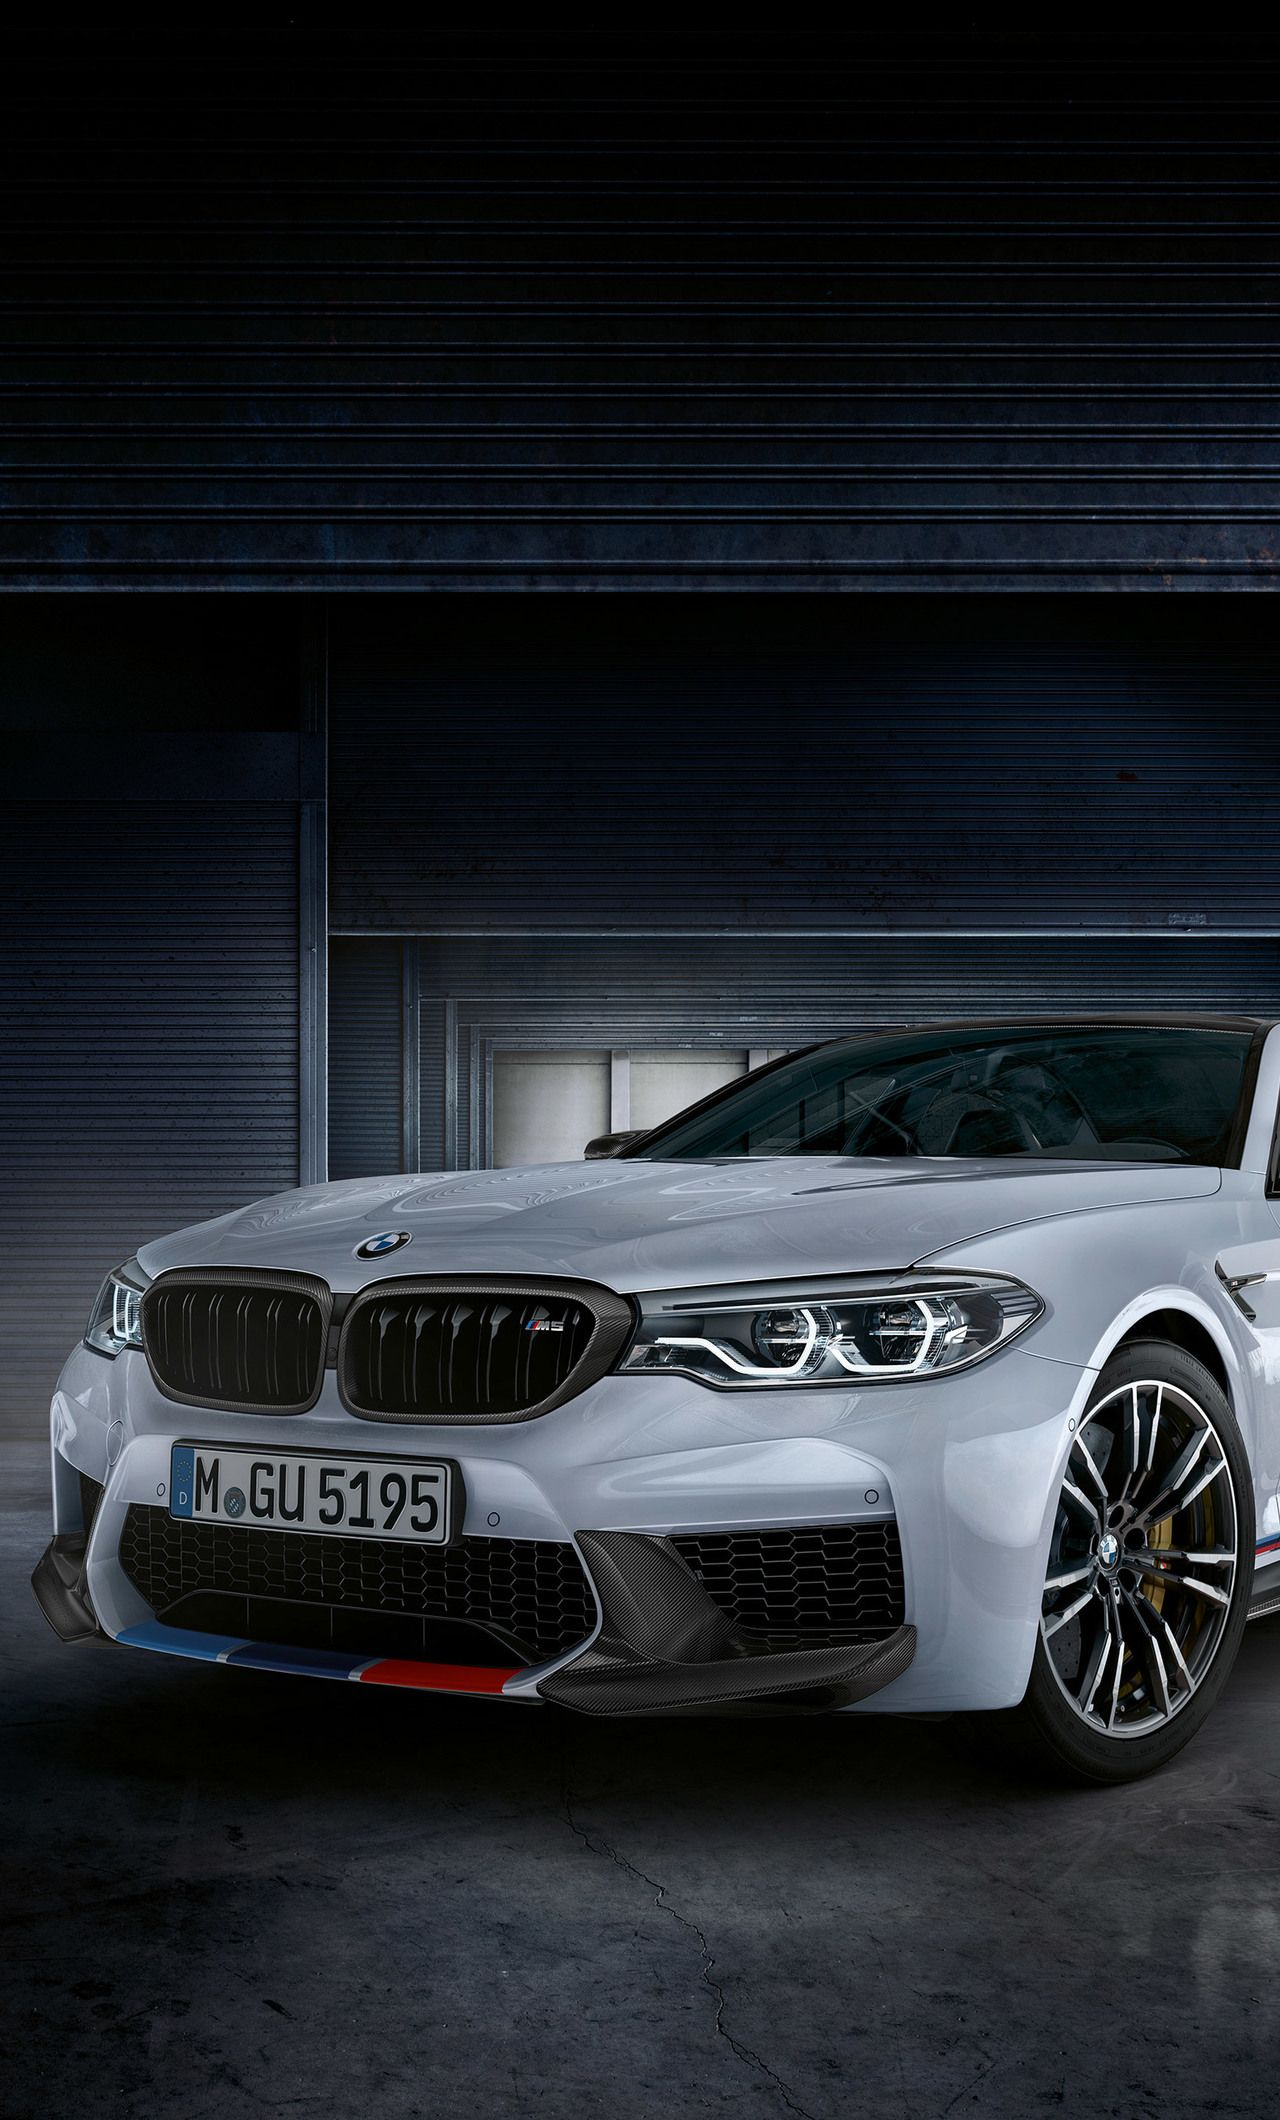 1280x2120 1280x2120 BMW M5 M Performance Parts 2018 iPhone 6+ HD 4k Wallpapers ...